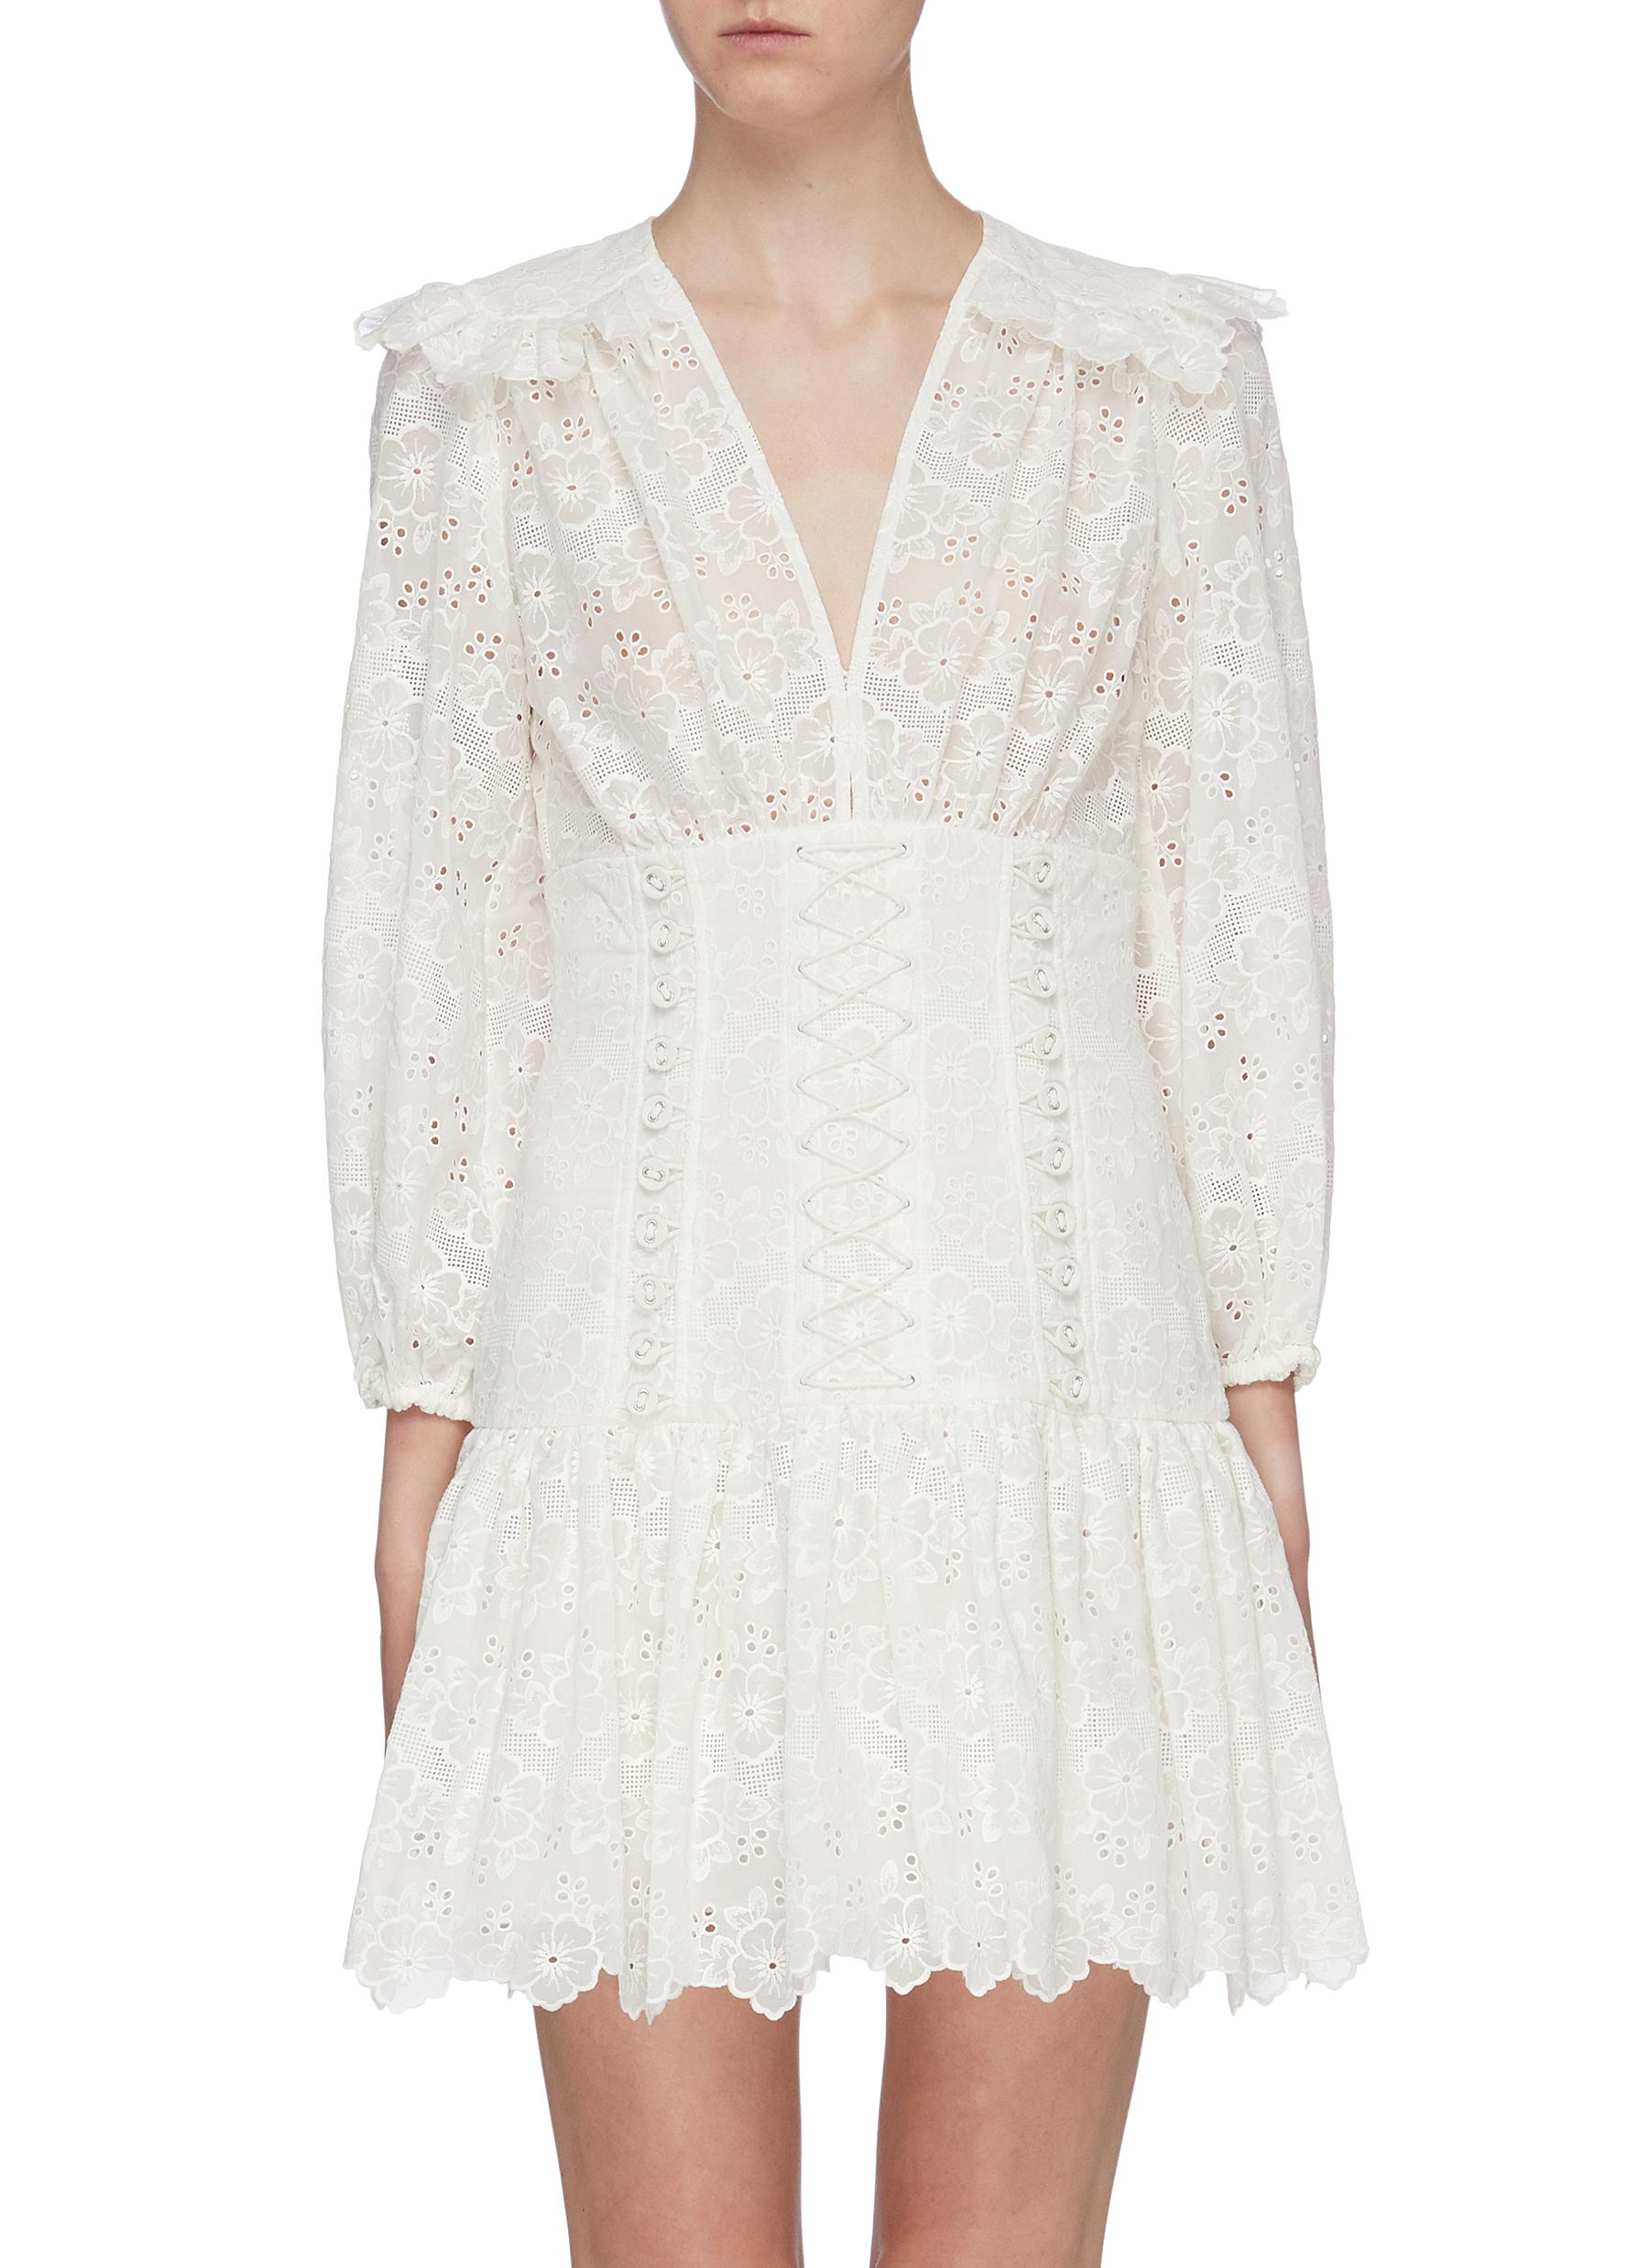 Honour ruffle yoke floral broderie anglaise corset dress by Zimmermann